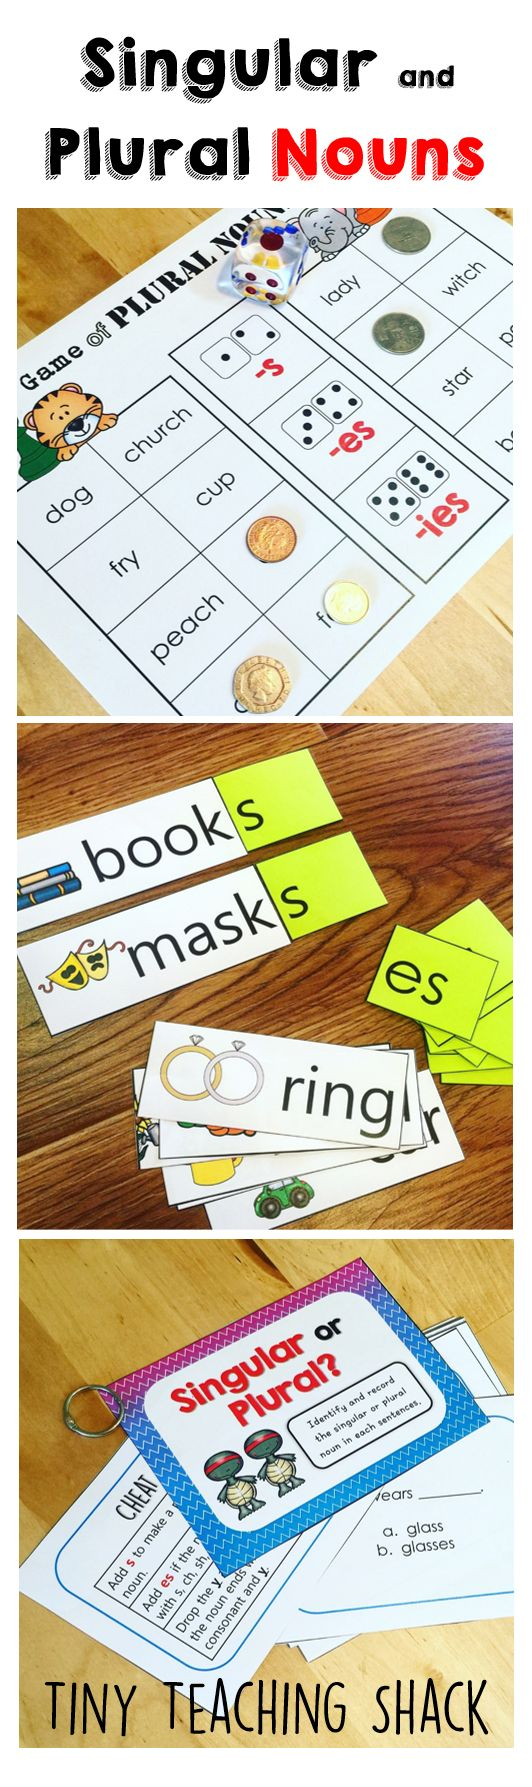 Workbooks making words plural worksheets : The 25+ best Singular and plural nouns ideas on Pinterest | Plural ...